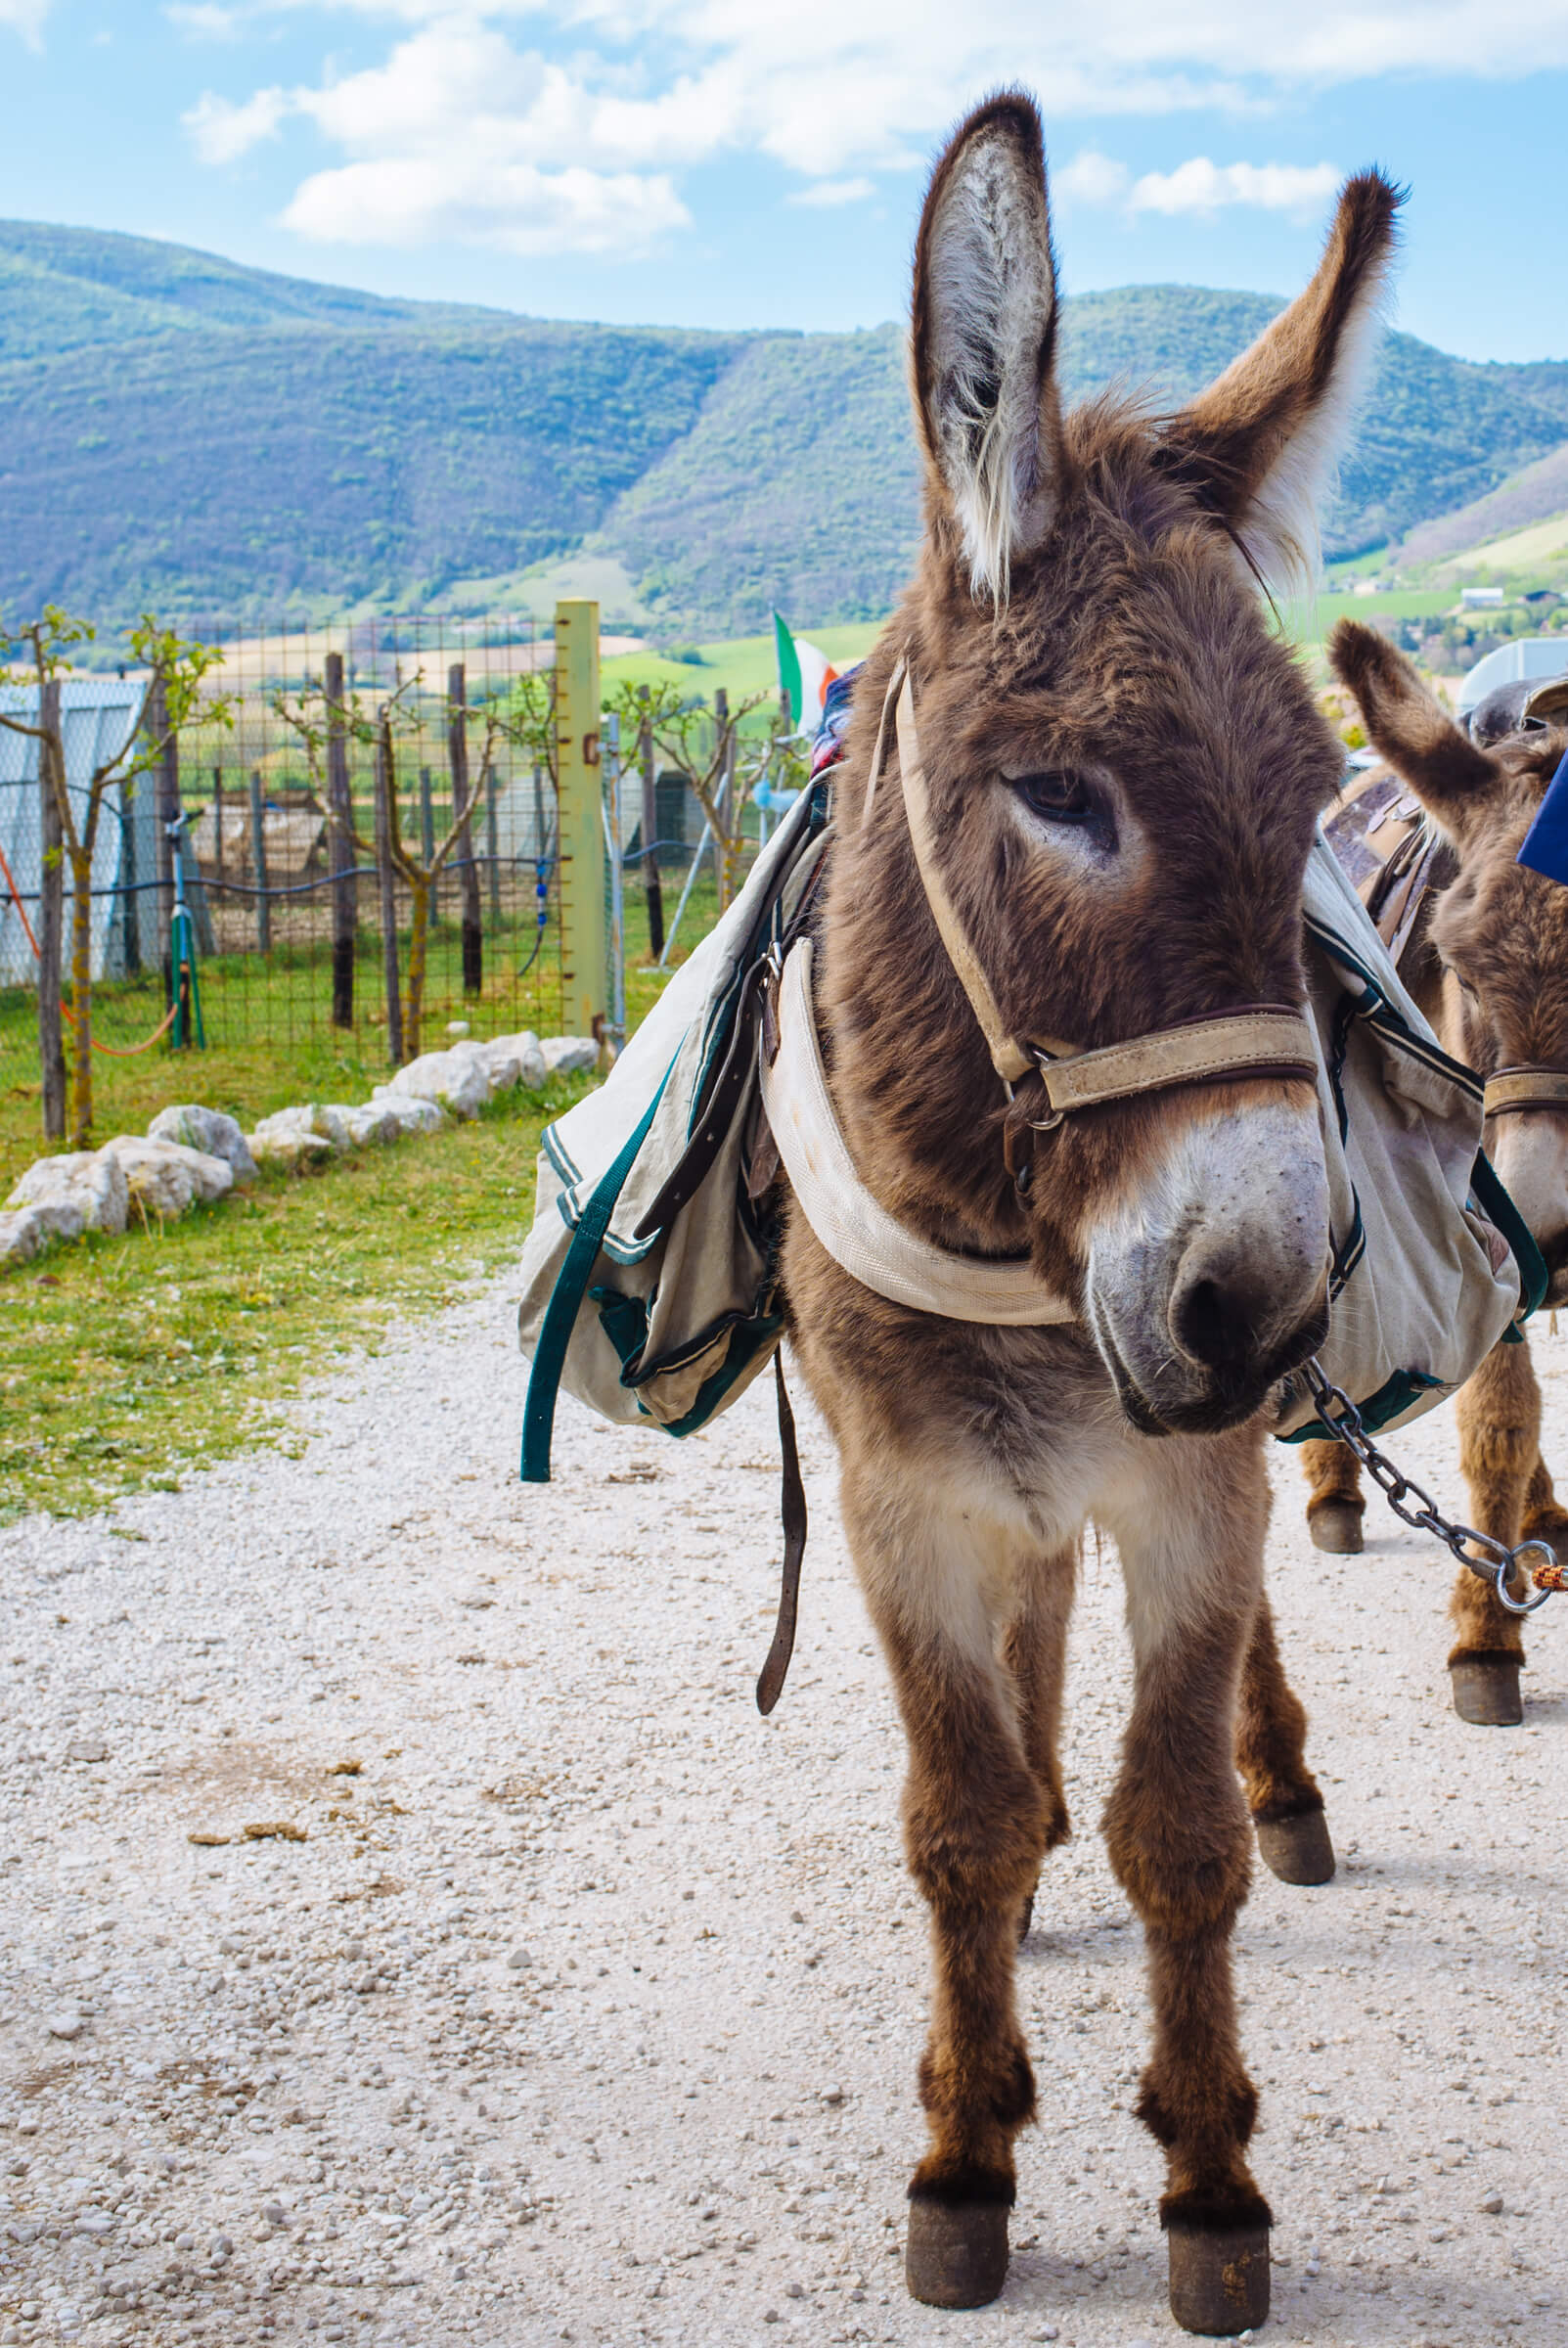 Riding Donkeys in Norcia Umbria Italy countryside, The Taste Edit